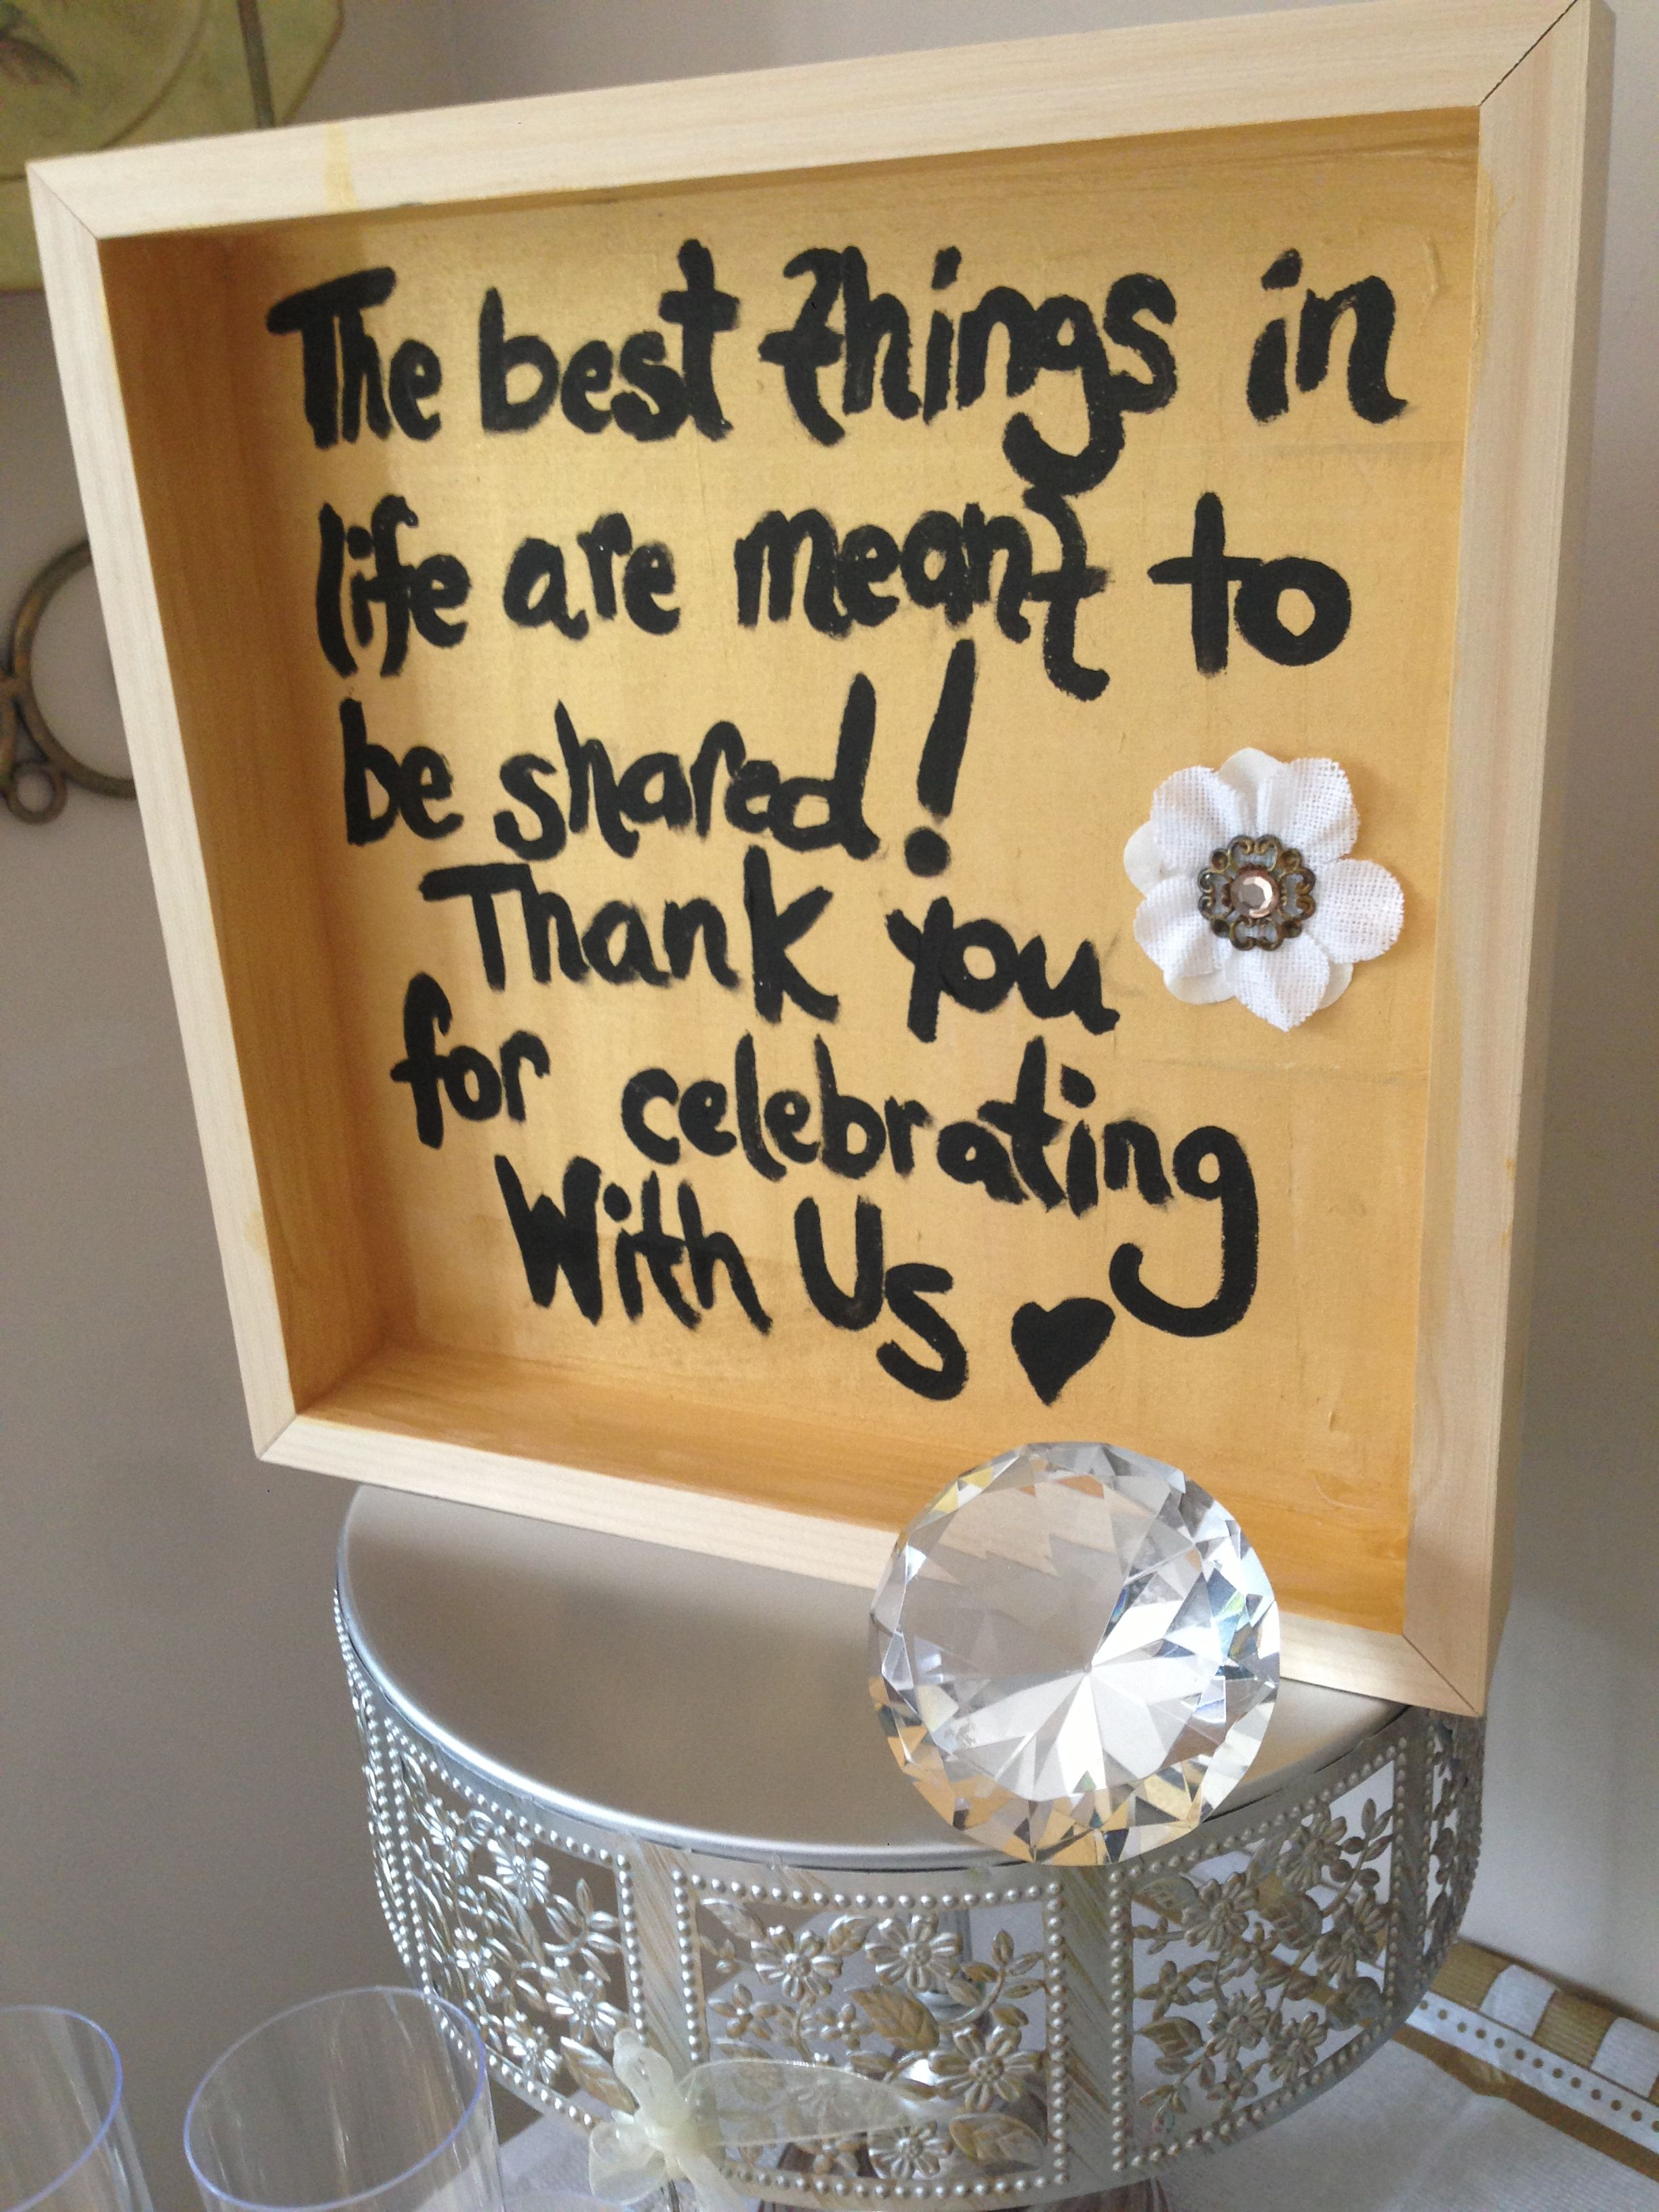 """""""The Sweetest things in life are meant to be shared! Thank you for celebrating with us!"""" We could put this on on something Like it?"""